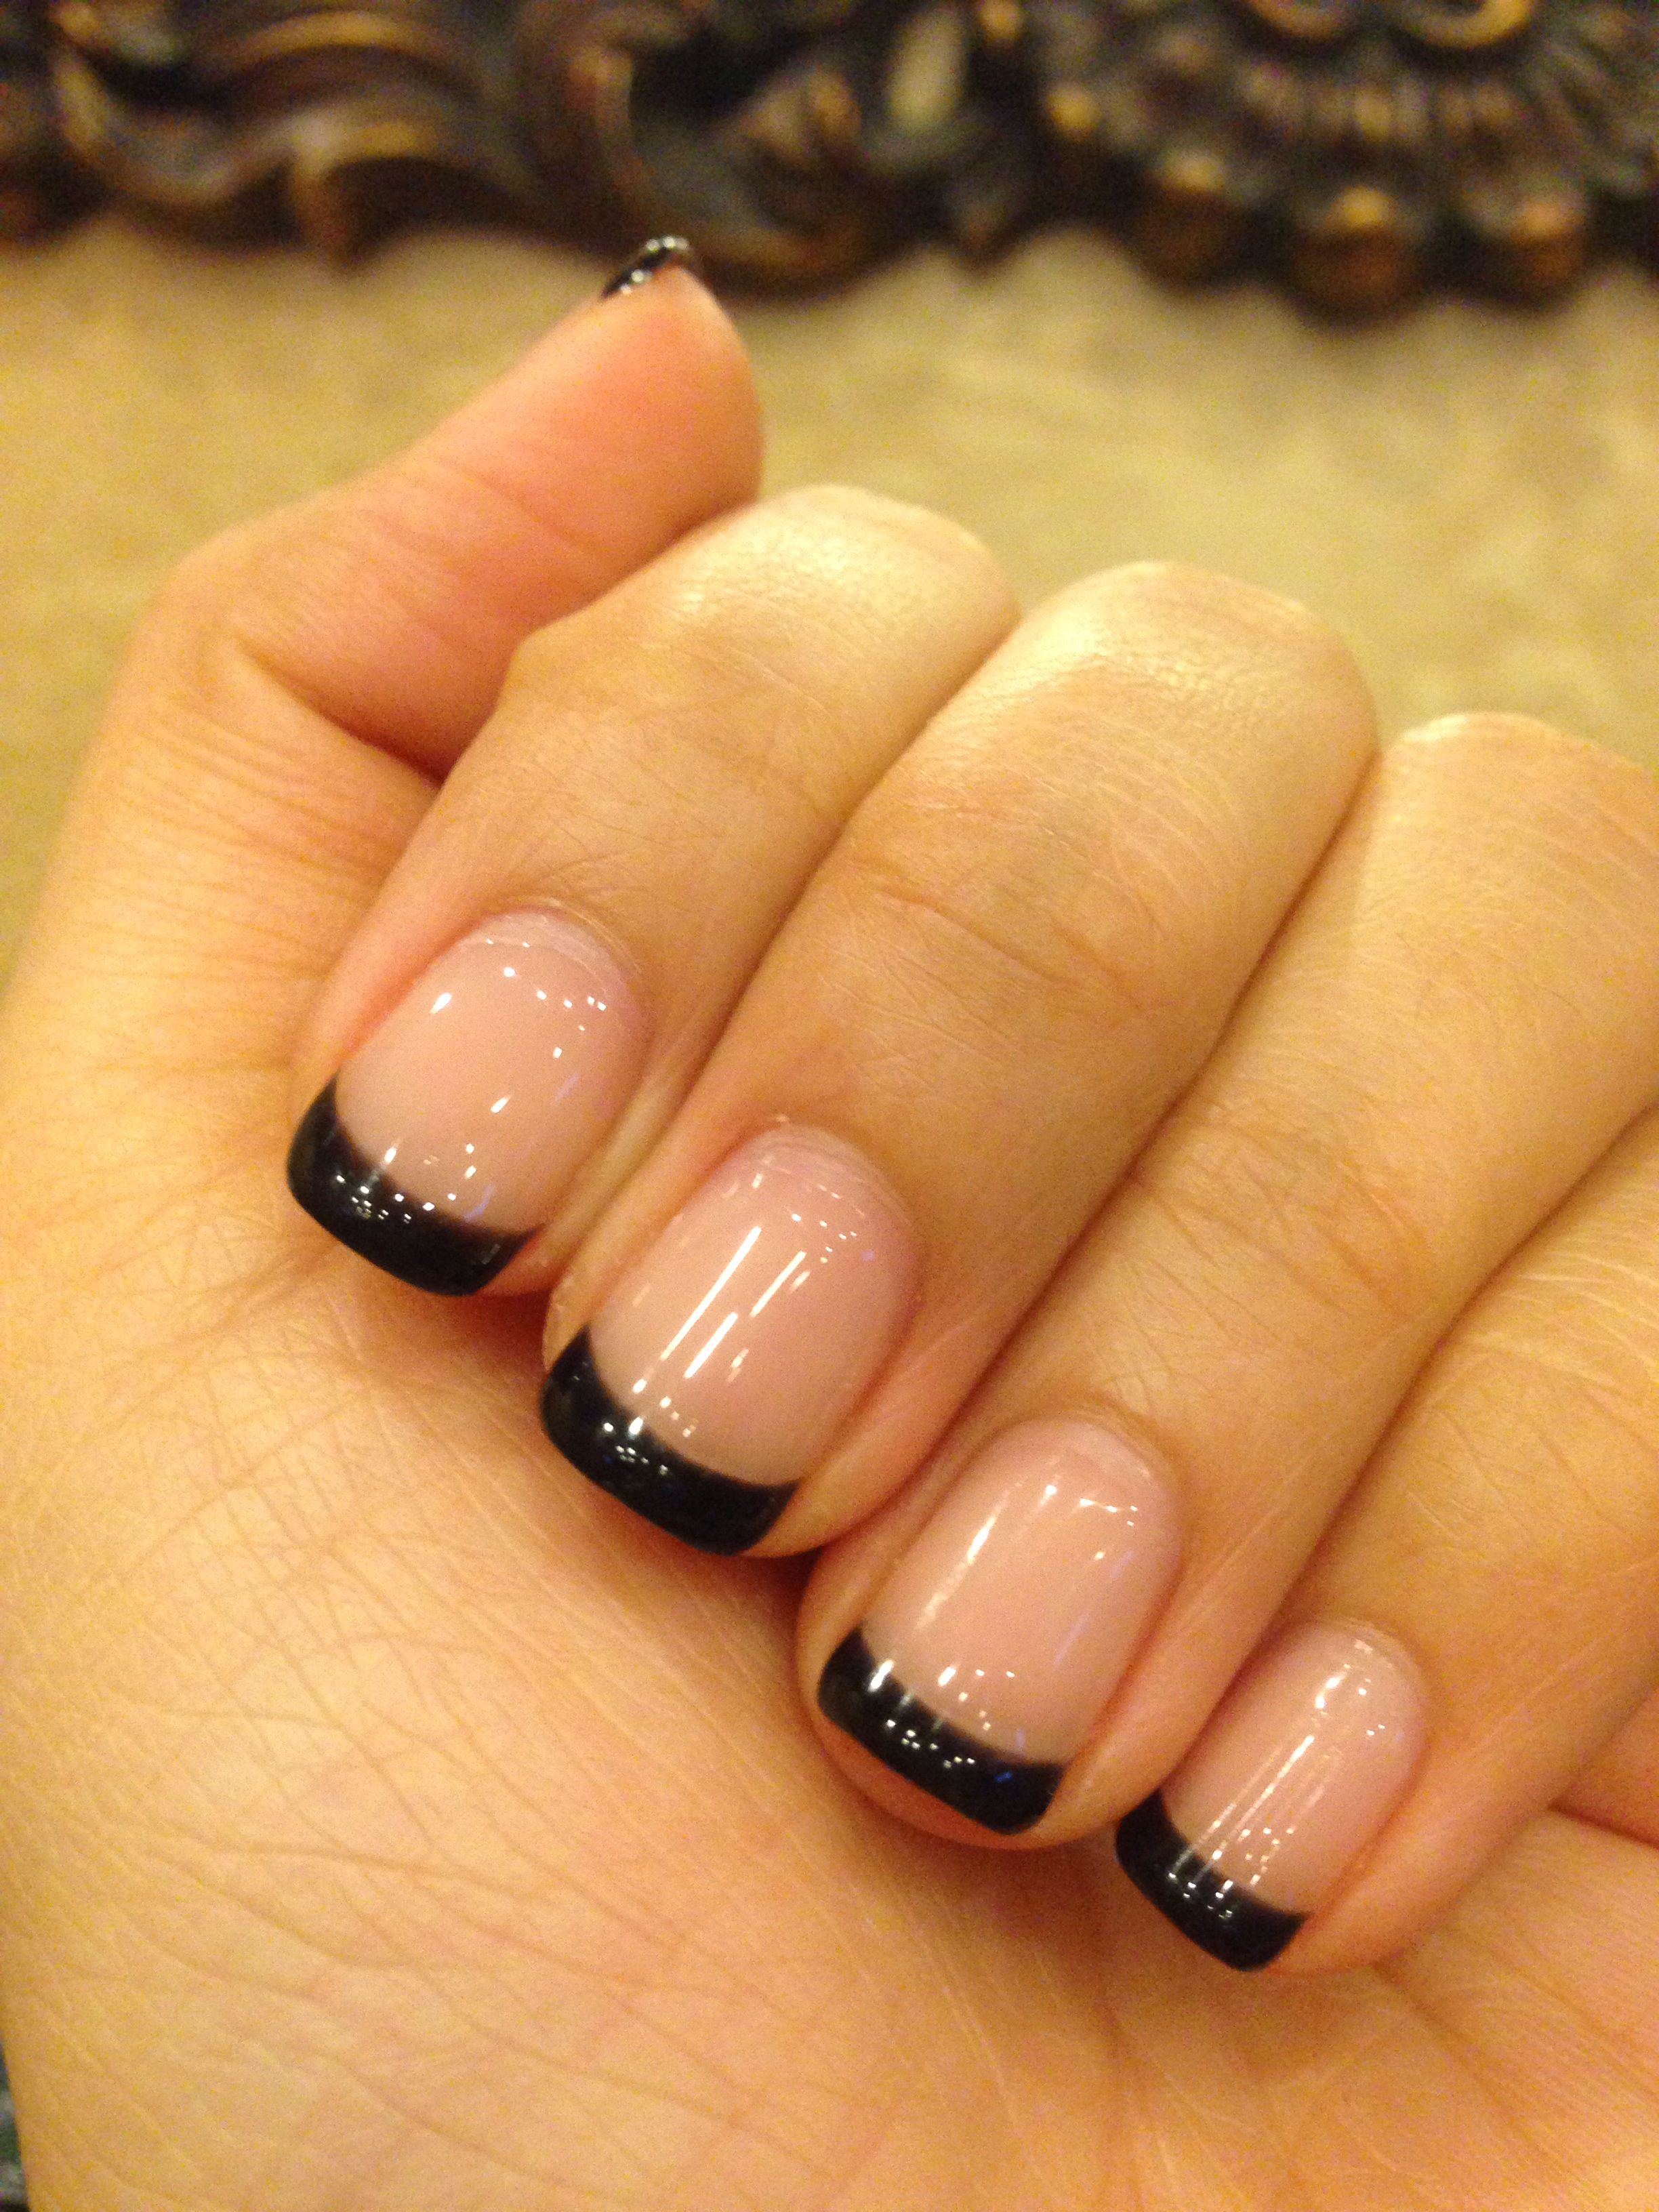 Black Gel Nails With One Silver Glitter Nail: Nude Base With Black French Gel Nails, A Great Transition